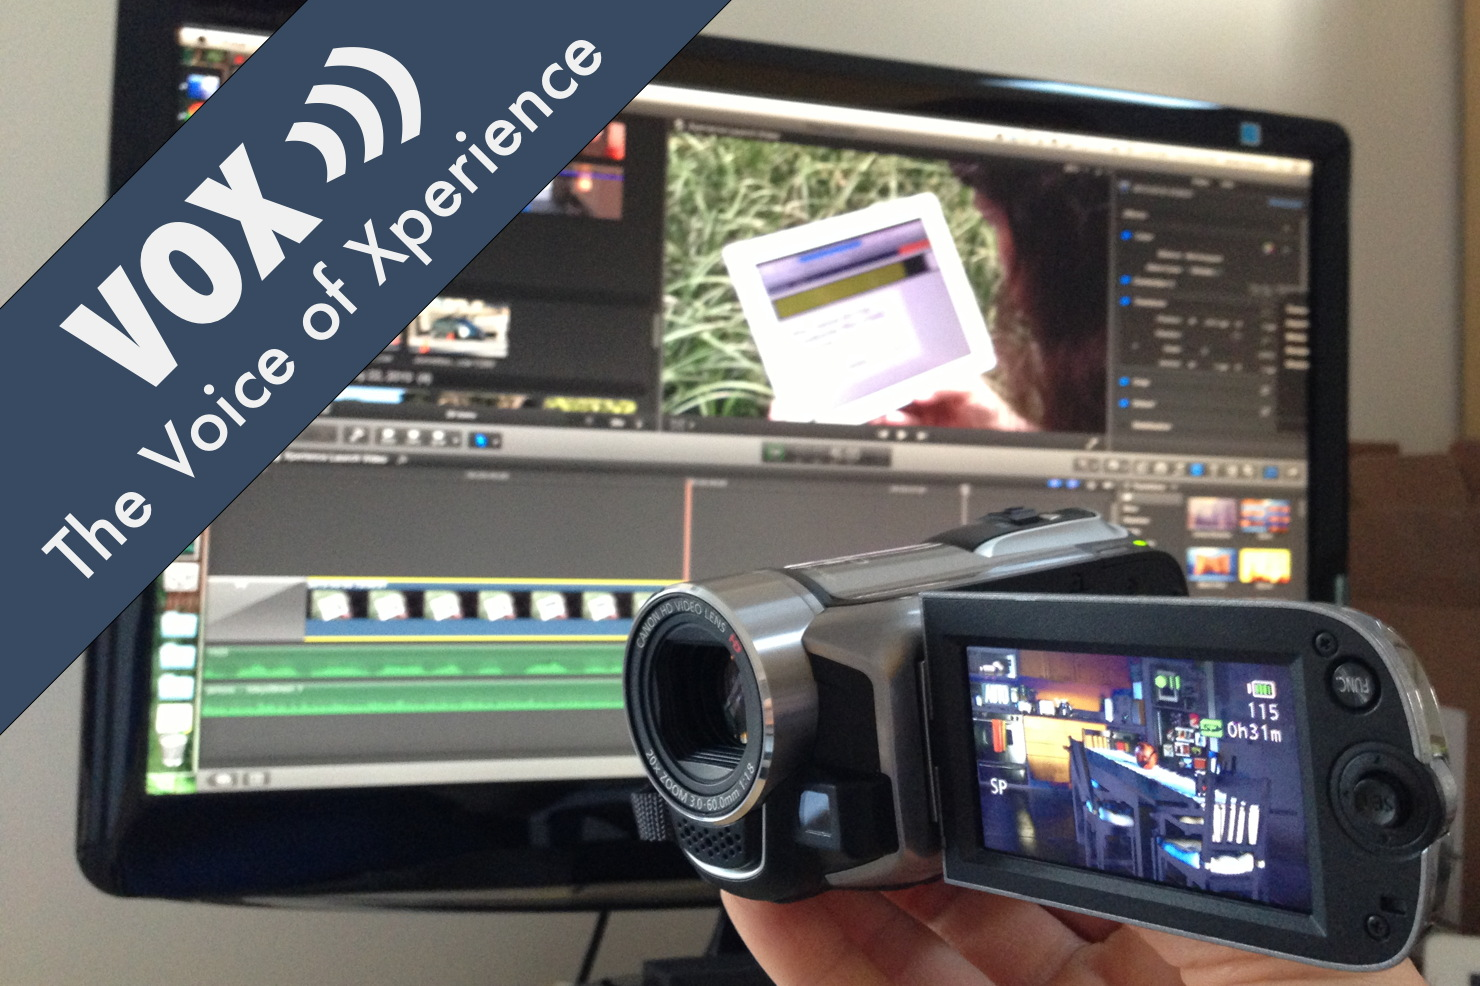 VOX - The Voice of Xperience. When iMovie Isn't Enough, Amateur Video Producers Can Go Pro